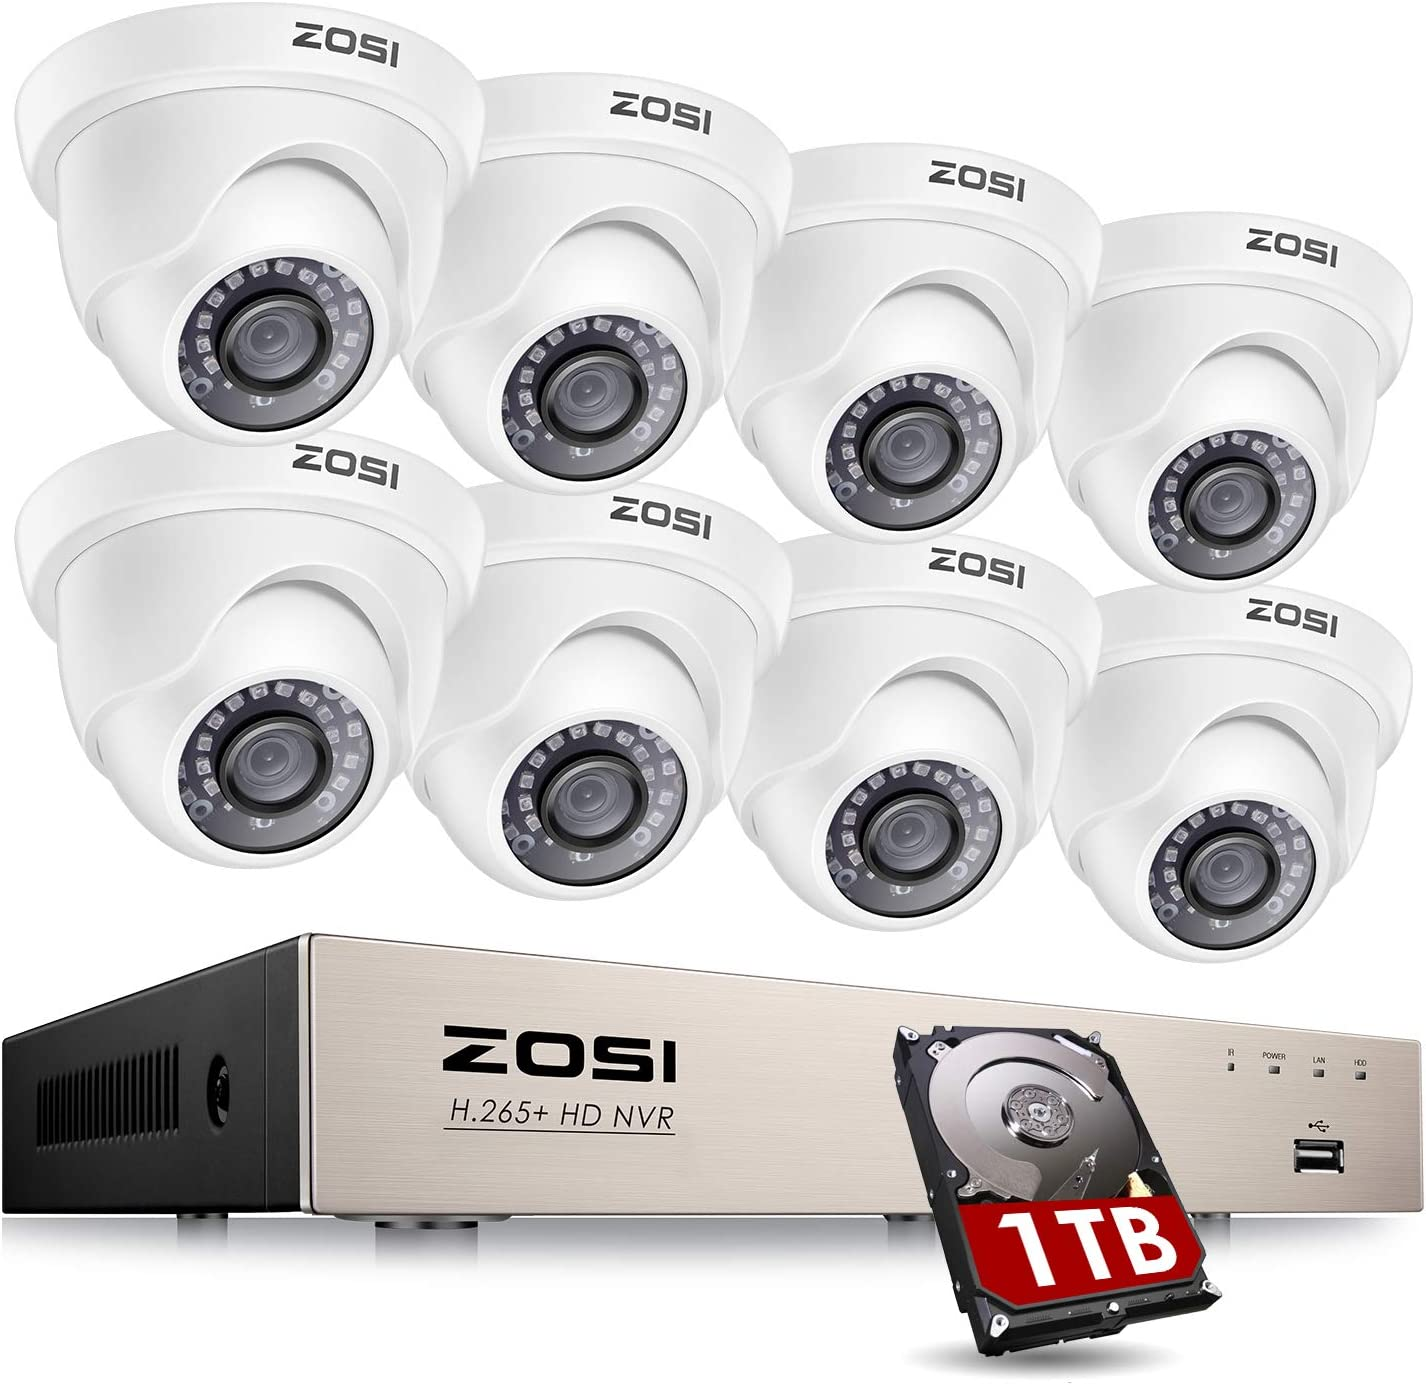 ZOSI 8CH PoE Home Security Camera System with Hard Drive 1TB,H.265+ 8-Channel 5MP 2K+ CCTV NVR,8pcs Wired 1080P 2MP Outdoor Indoor PoE IP Dome Cameras with Night Vision, Motion Alert, Remote Access